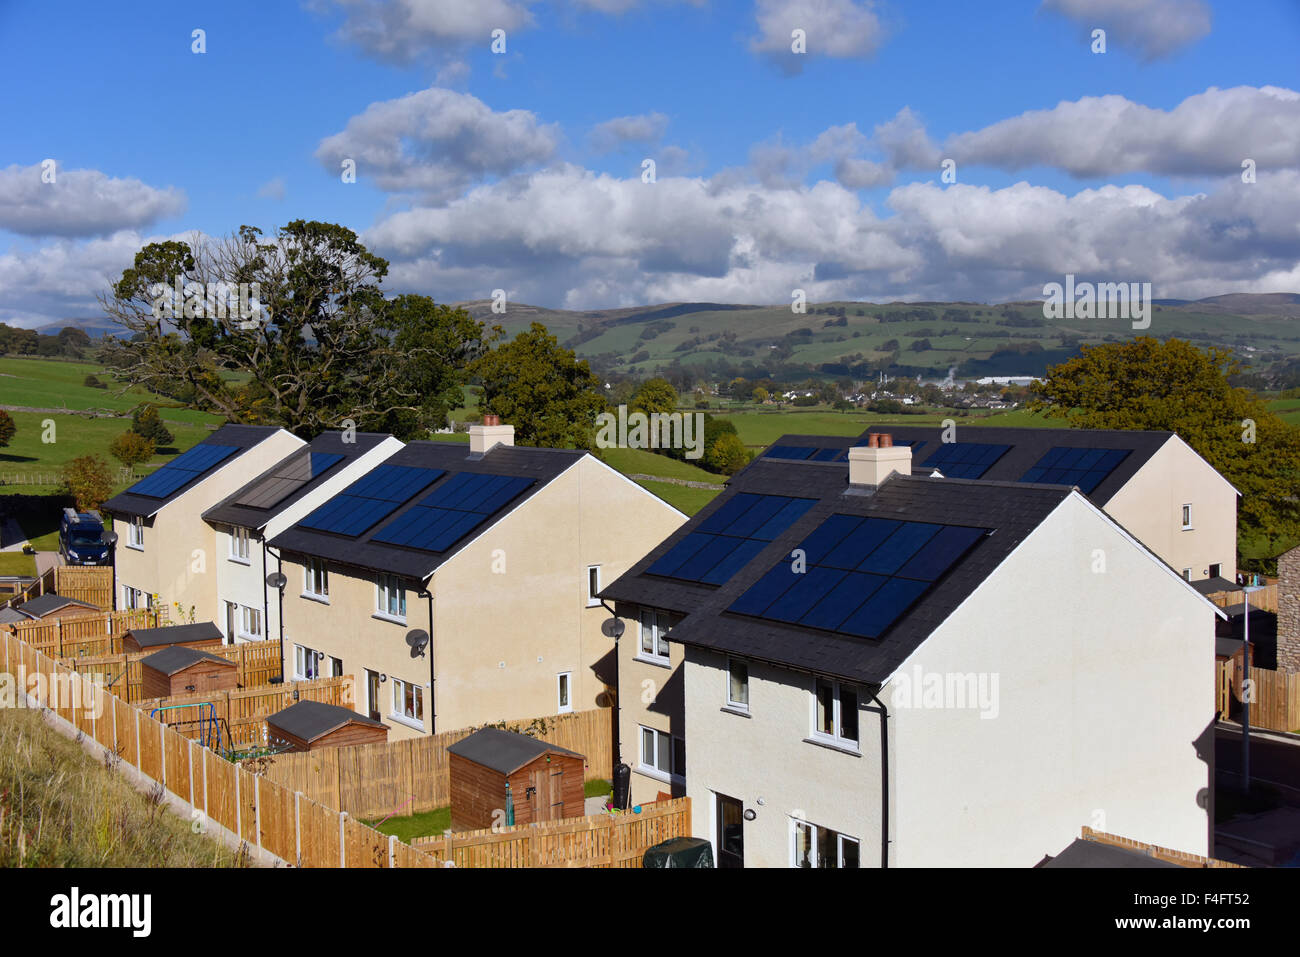 New affordable domestic housing with solar panels on roof. Fir Tree Rise, Kendal, Cumbria, England, United KIngdom, - Stock Image